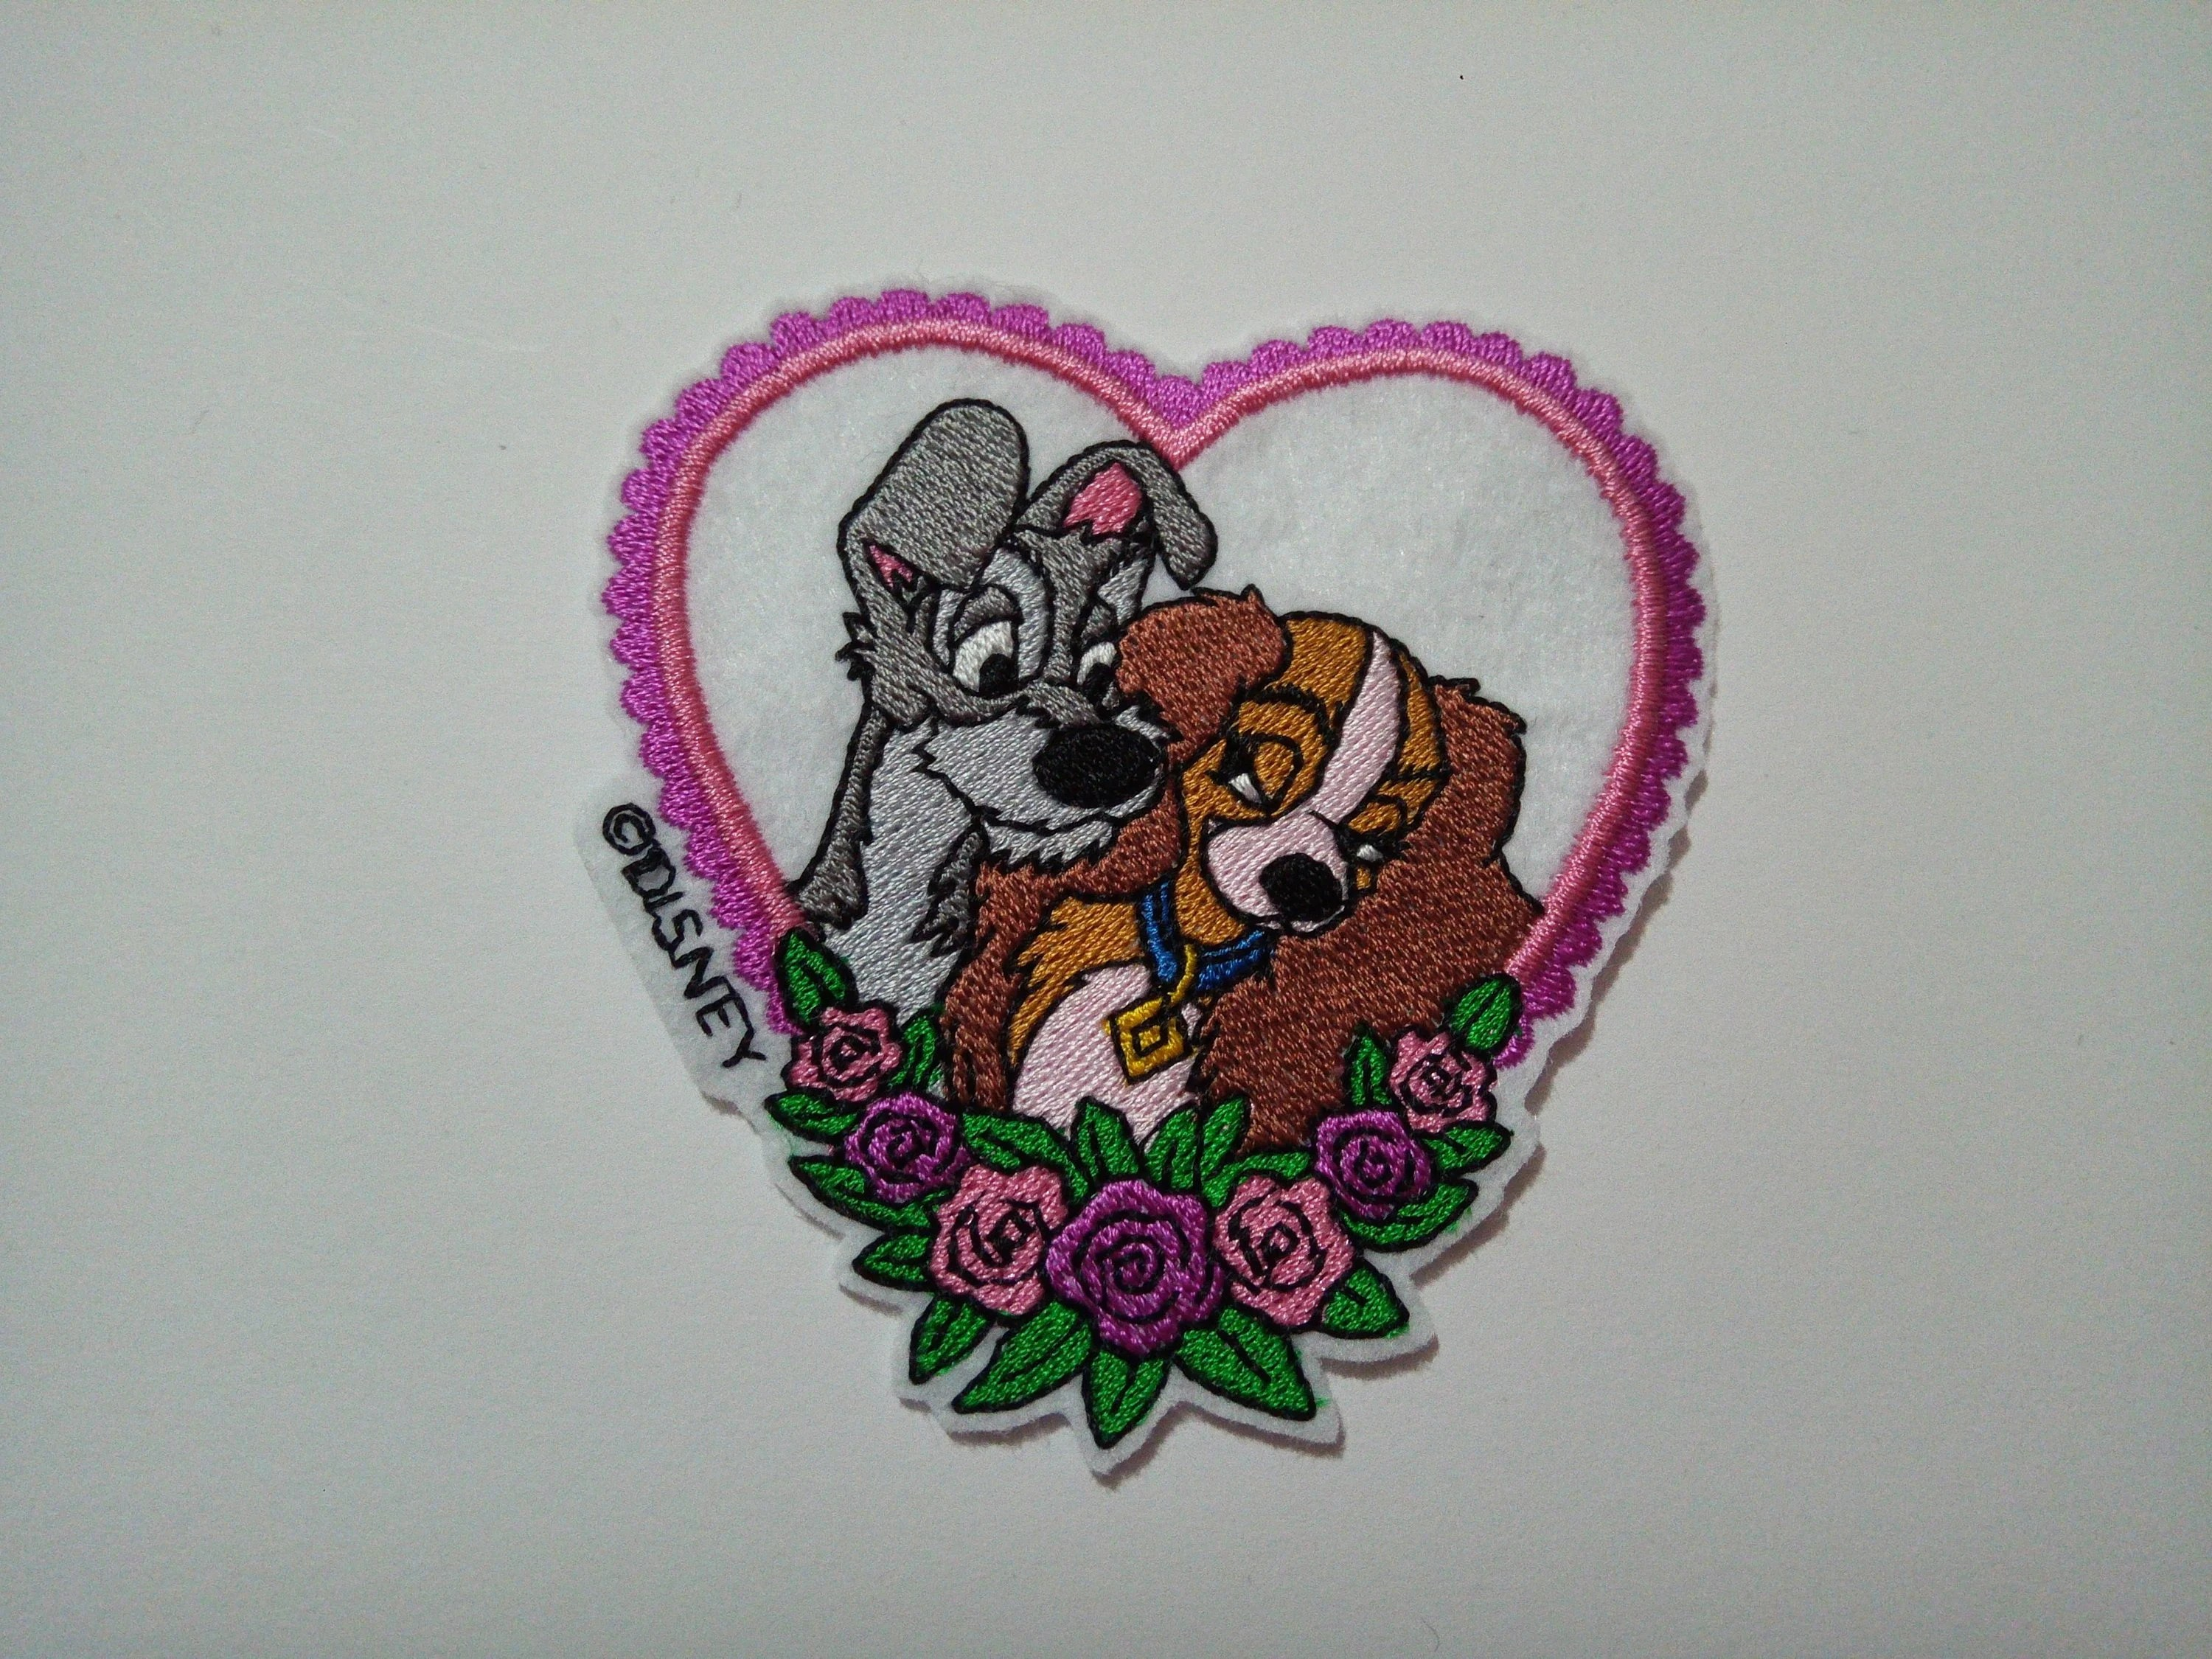 9 To Cm 9 Cm X 9 Cm 3 54 Lady And Tramp Iron On Or Sew On Patch Disney Patch Disney Iron On Patch Lady And The Tramp Patchdog Patch